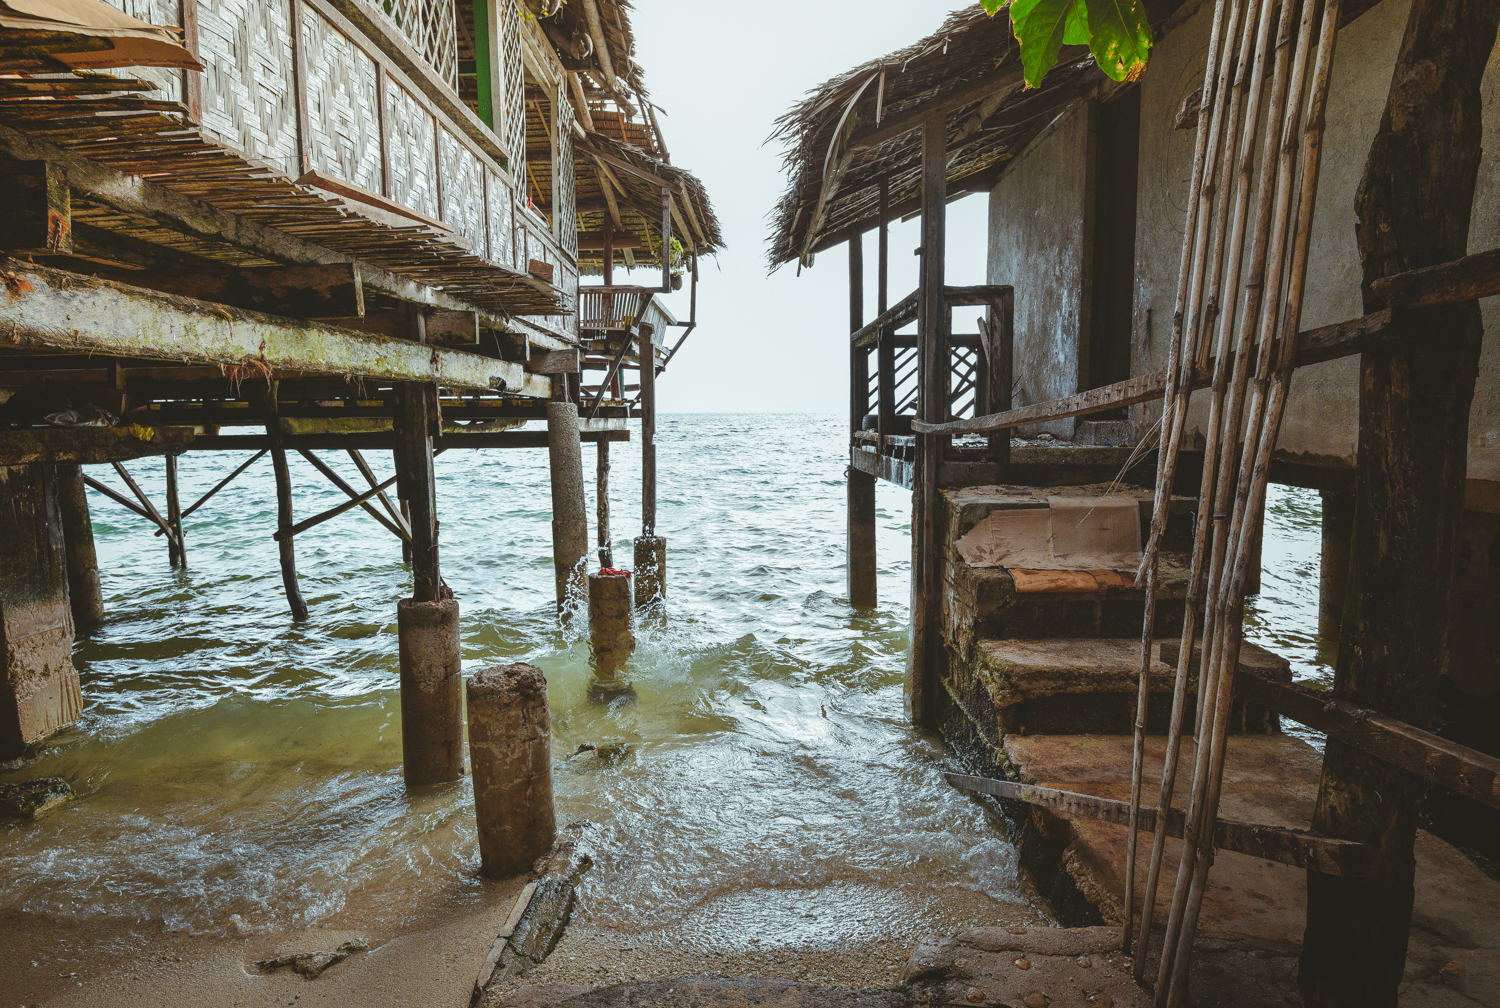 Panagsama, Philippines. Photo: Brad Chilby (https://chilby.com.au/). Photo©www.thingstodot.com.